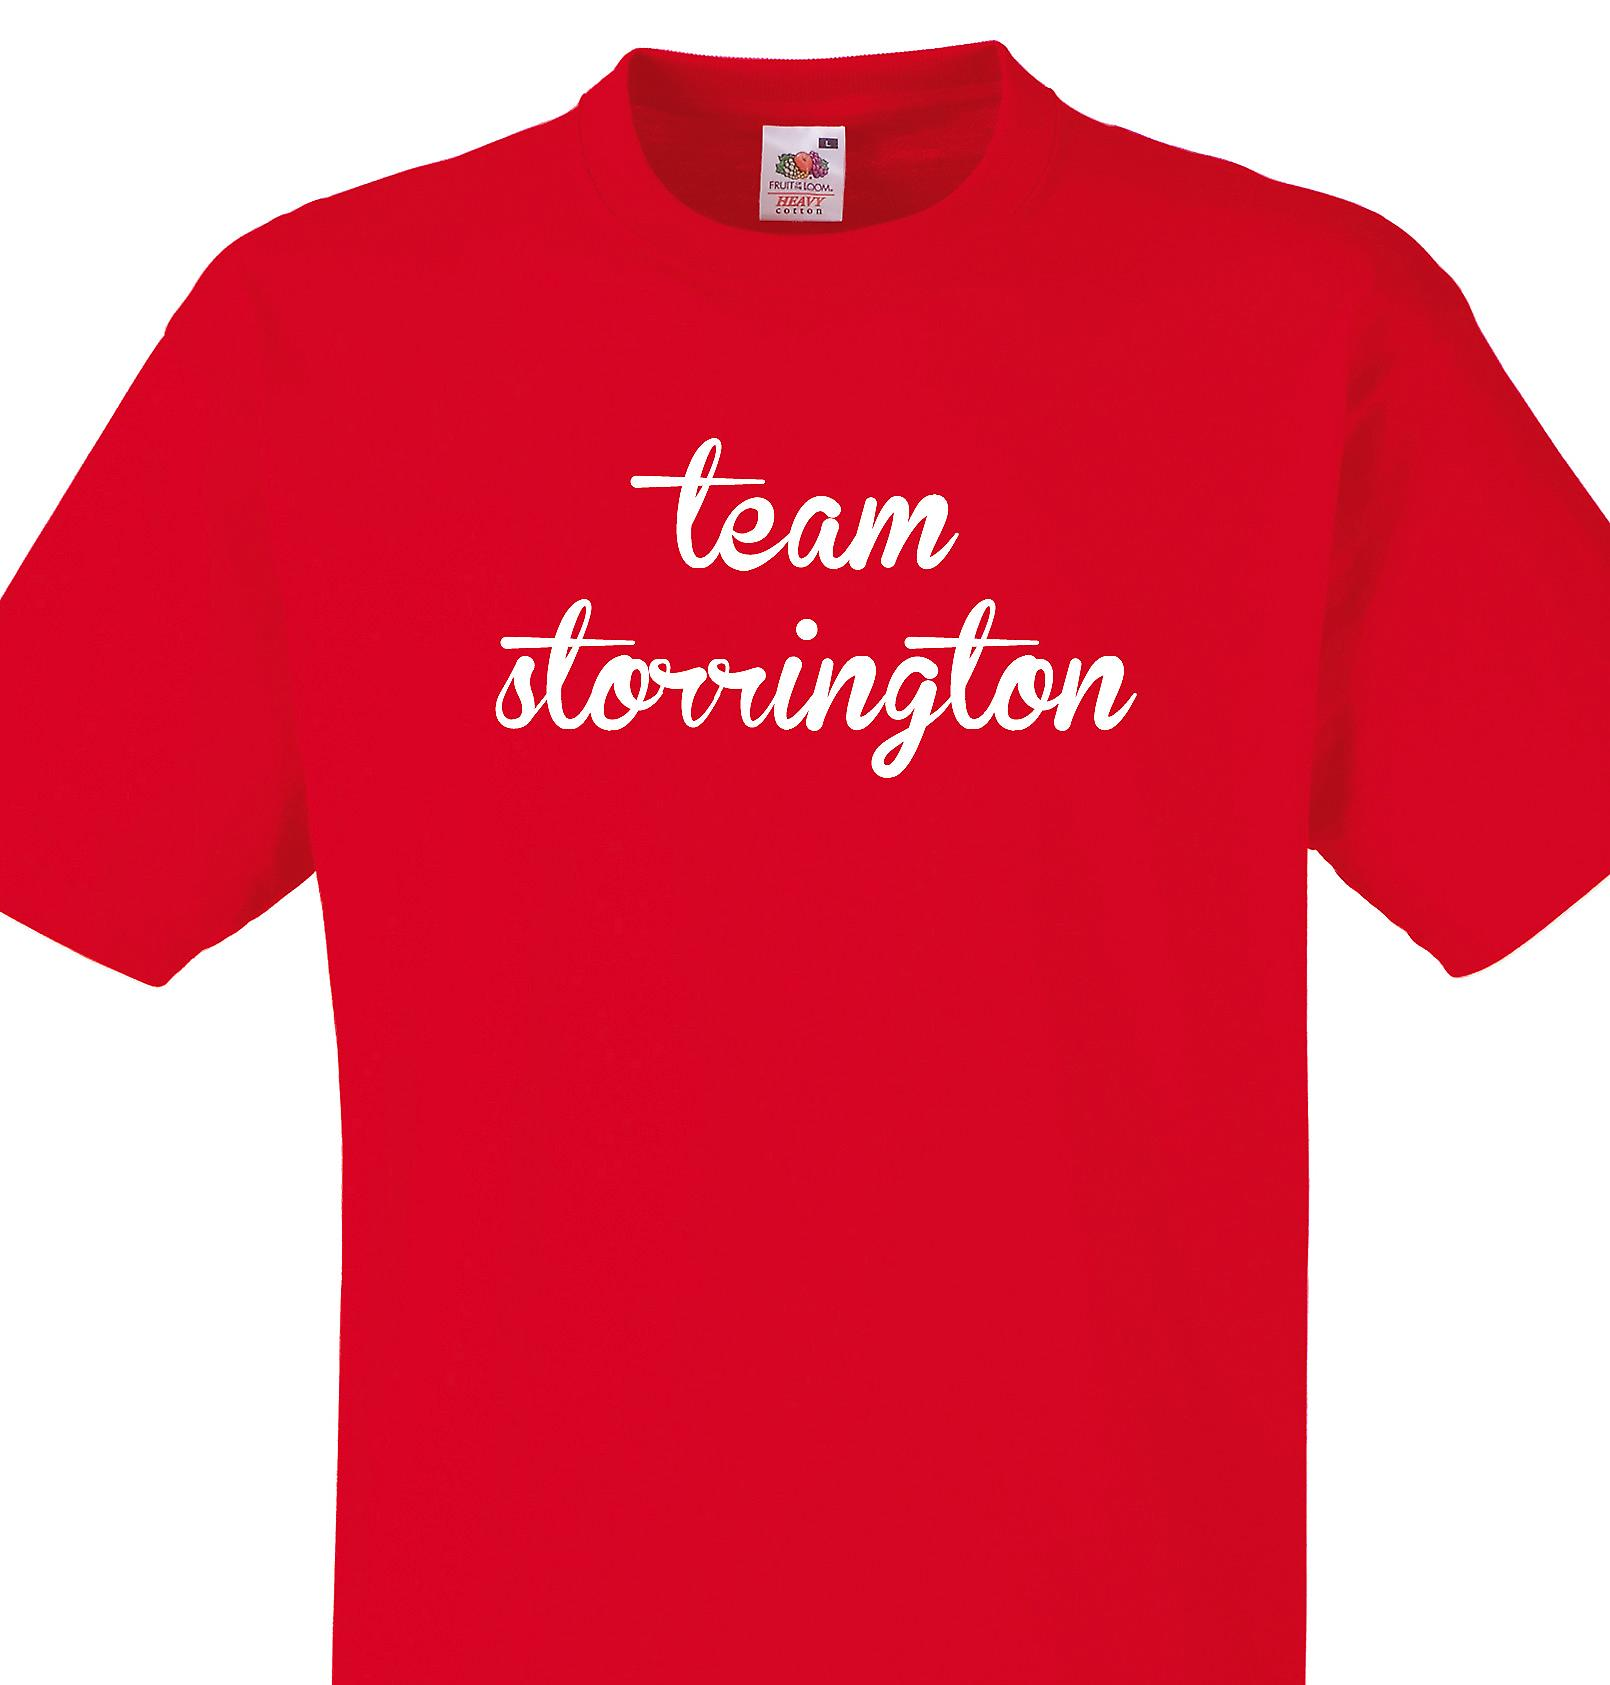 Team Storrington Red T shirt